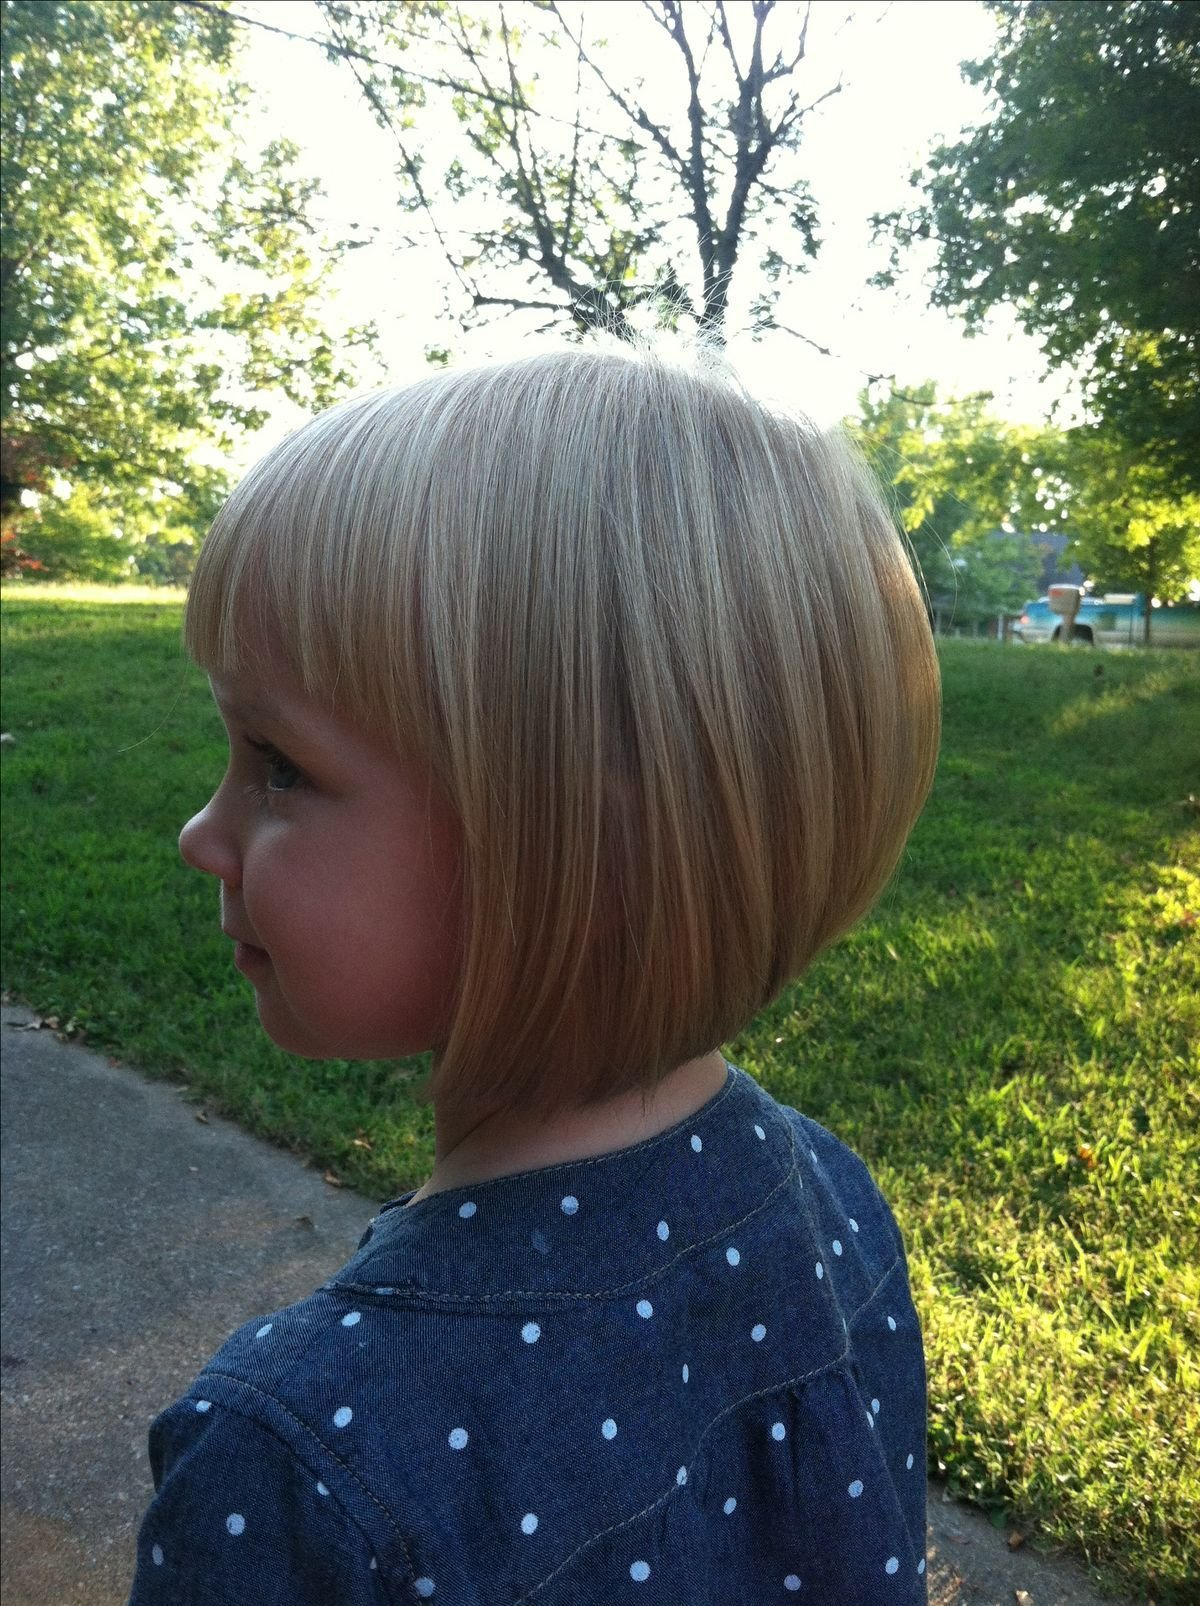 The Best 1000 Images About Kids Hair On Pinterest Little Girl Pictures